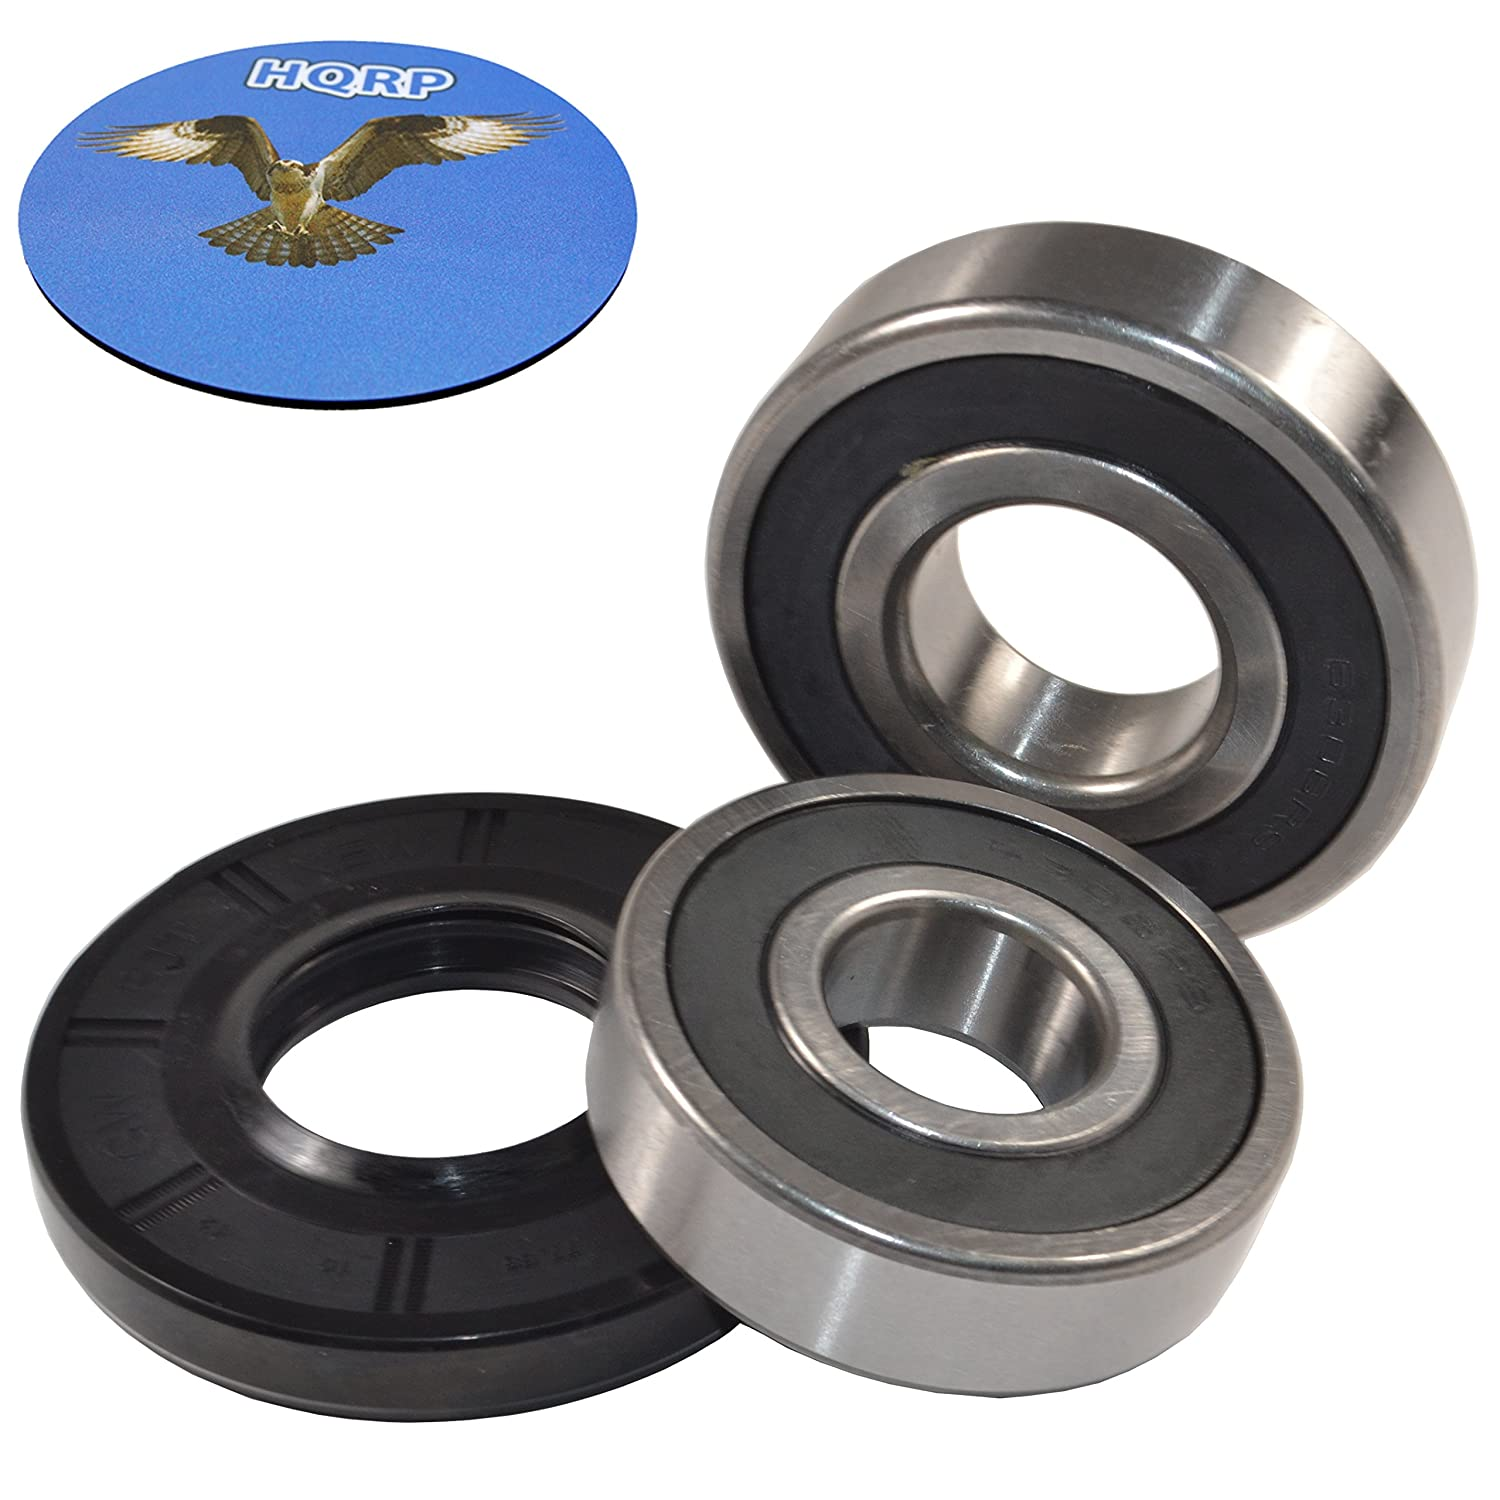 HQRP Bearing and Seal Kit Works with Samsung DC97-15328L WF209 WF210 WF218 WF219 WF220 WF231 WF330 WF331 WF340 WF350 WF361 WF363 WF365 WF407 WF409 WF410 WF419 Washer Tub + HQRP Coaster